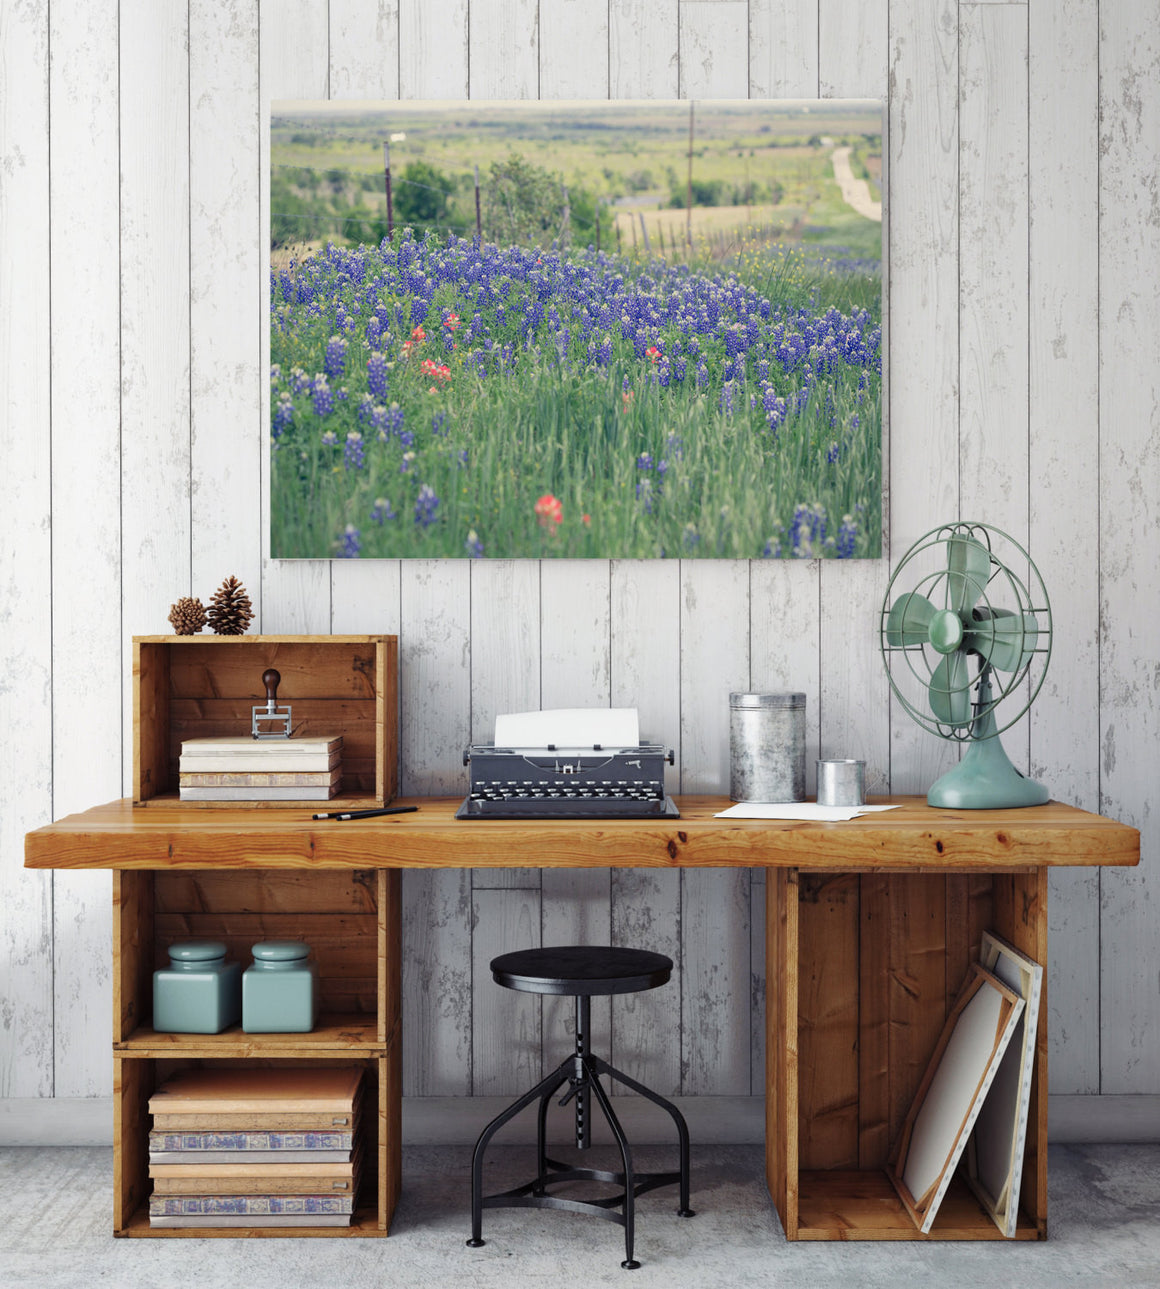 Texas photography, texas bluebonnets, texas art, bluebonnet canvas wrap, large wall art, bluebonnet art, rustic decor, texas decor, nature